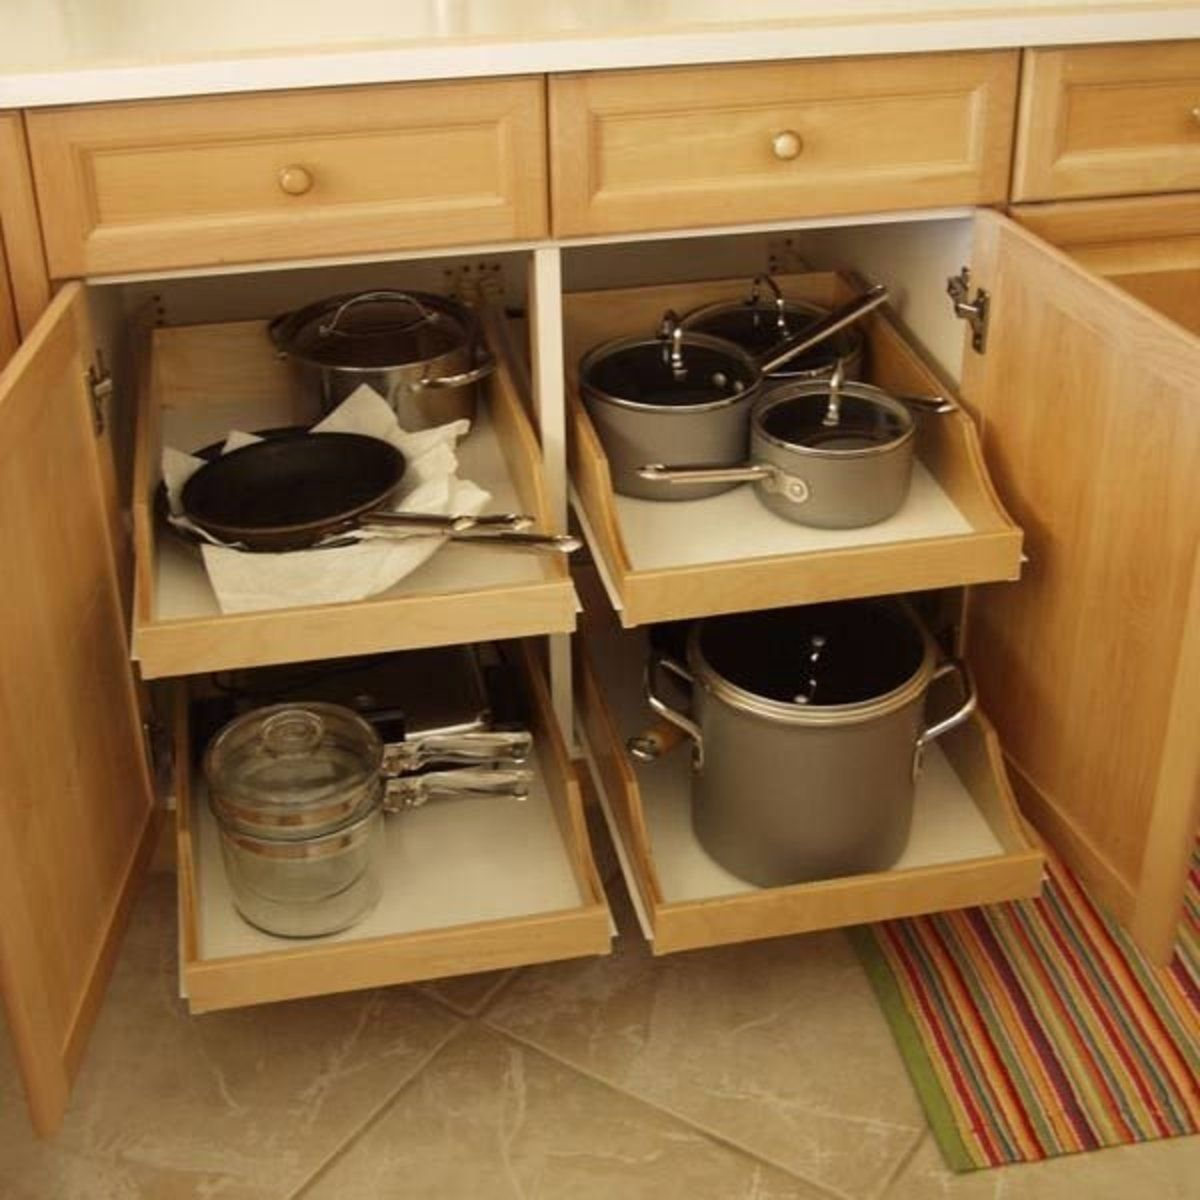 Rolling Shelves - DIY Pullout Shelf Kit 22""